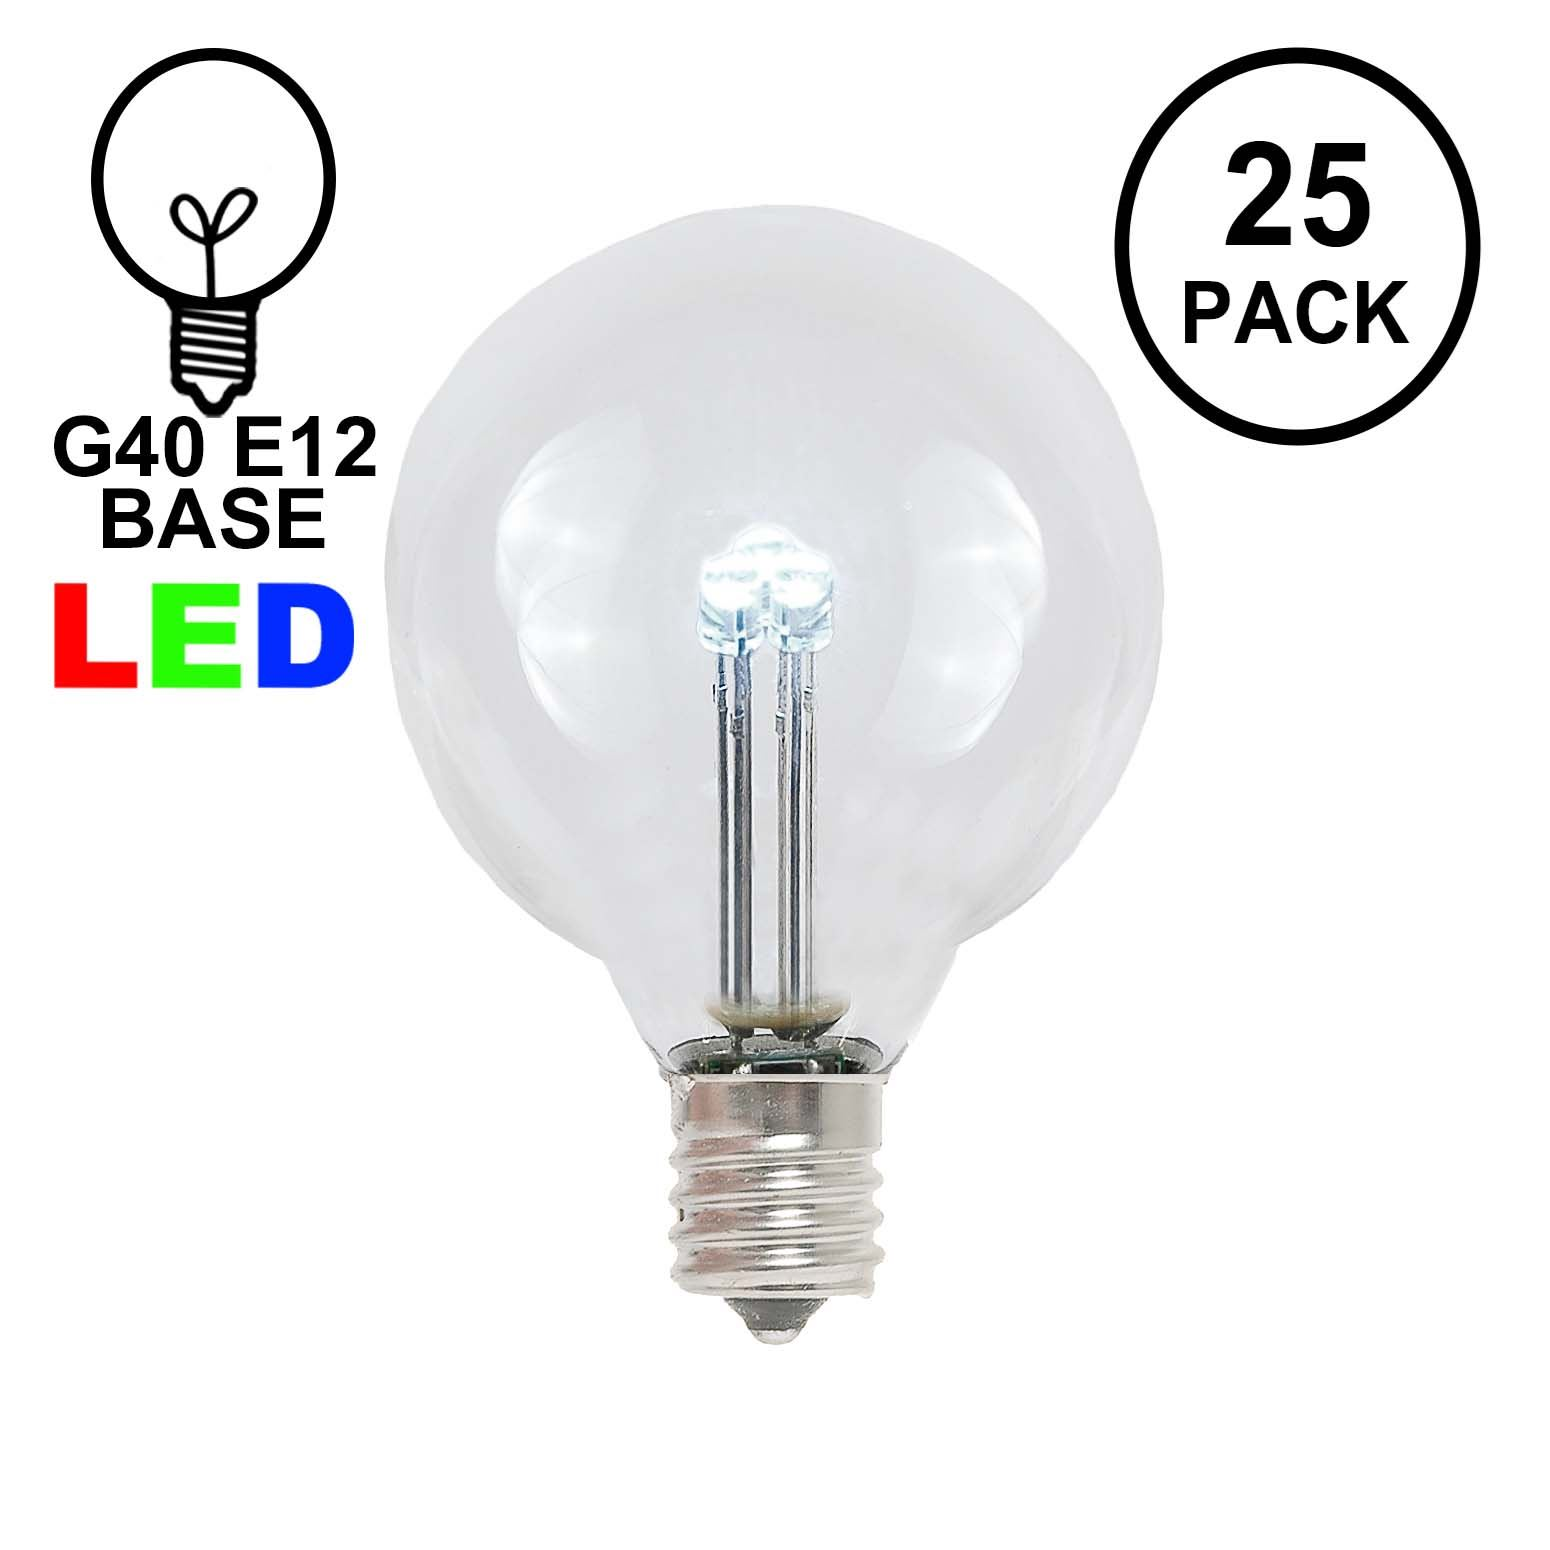 Pure White G40 Glass Led Replacement Bulbs 25 Pack